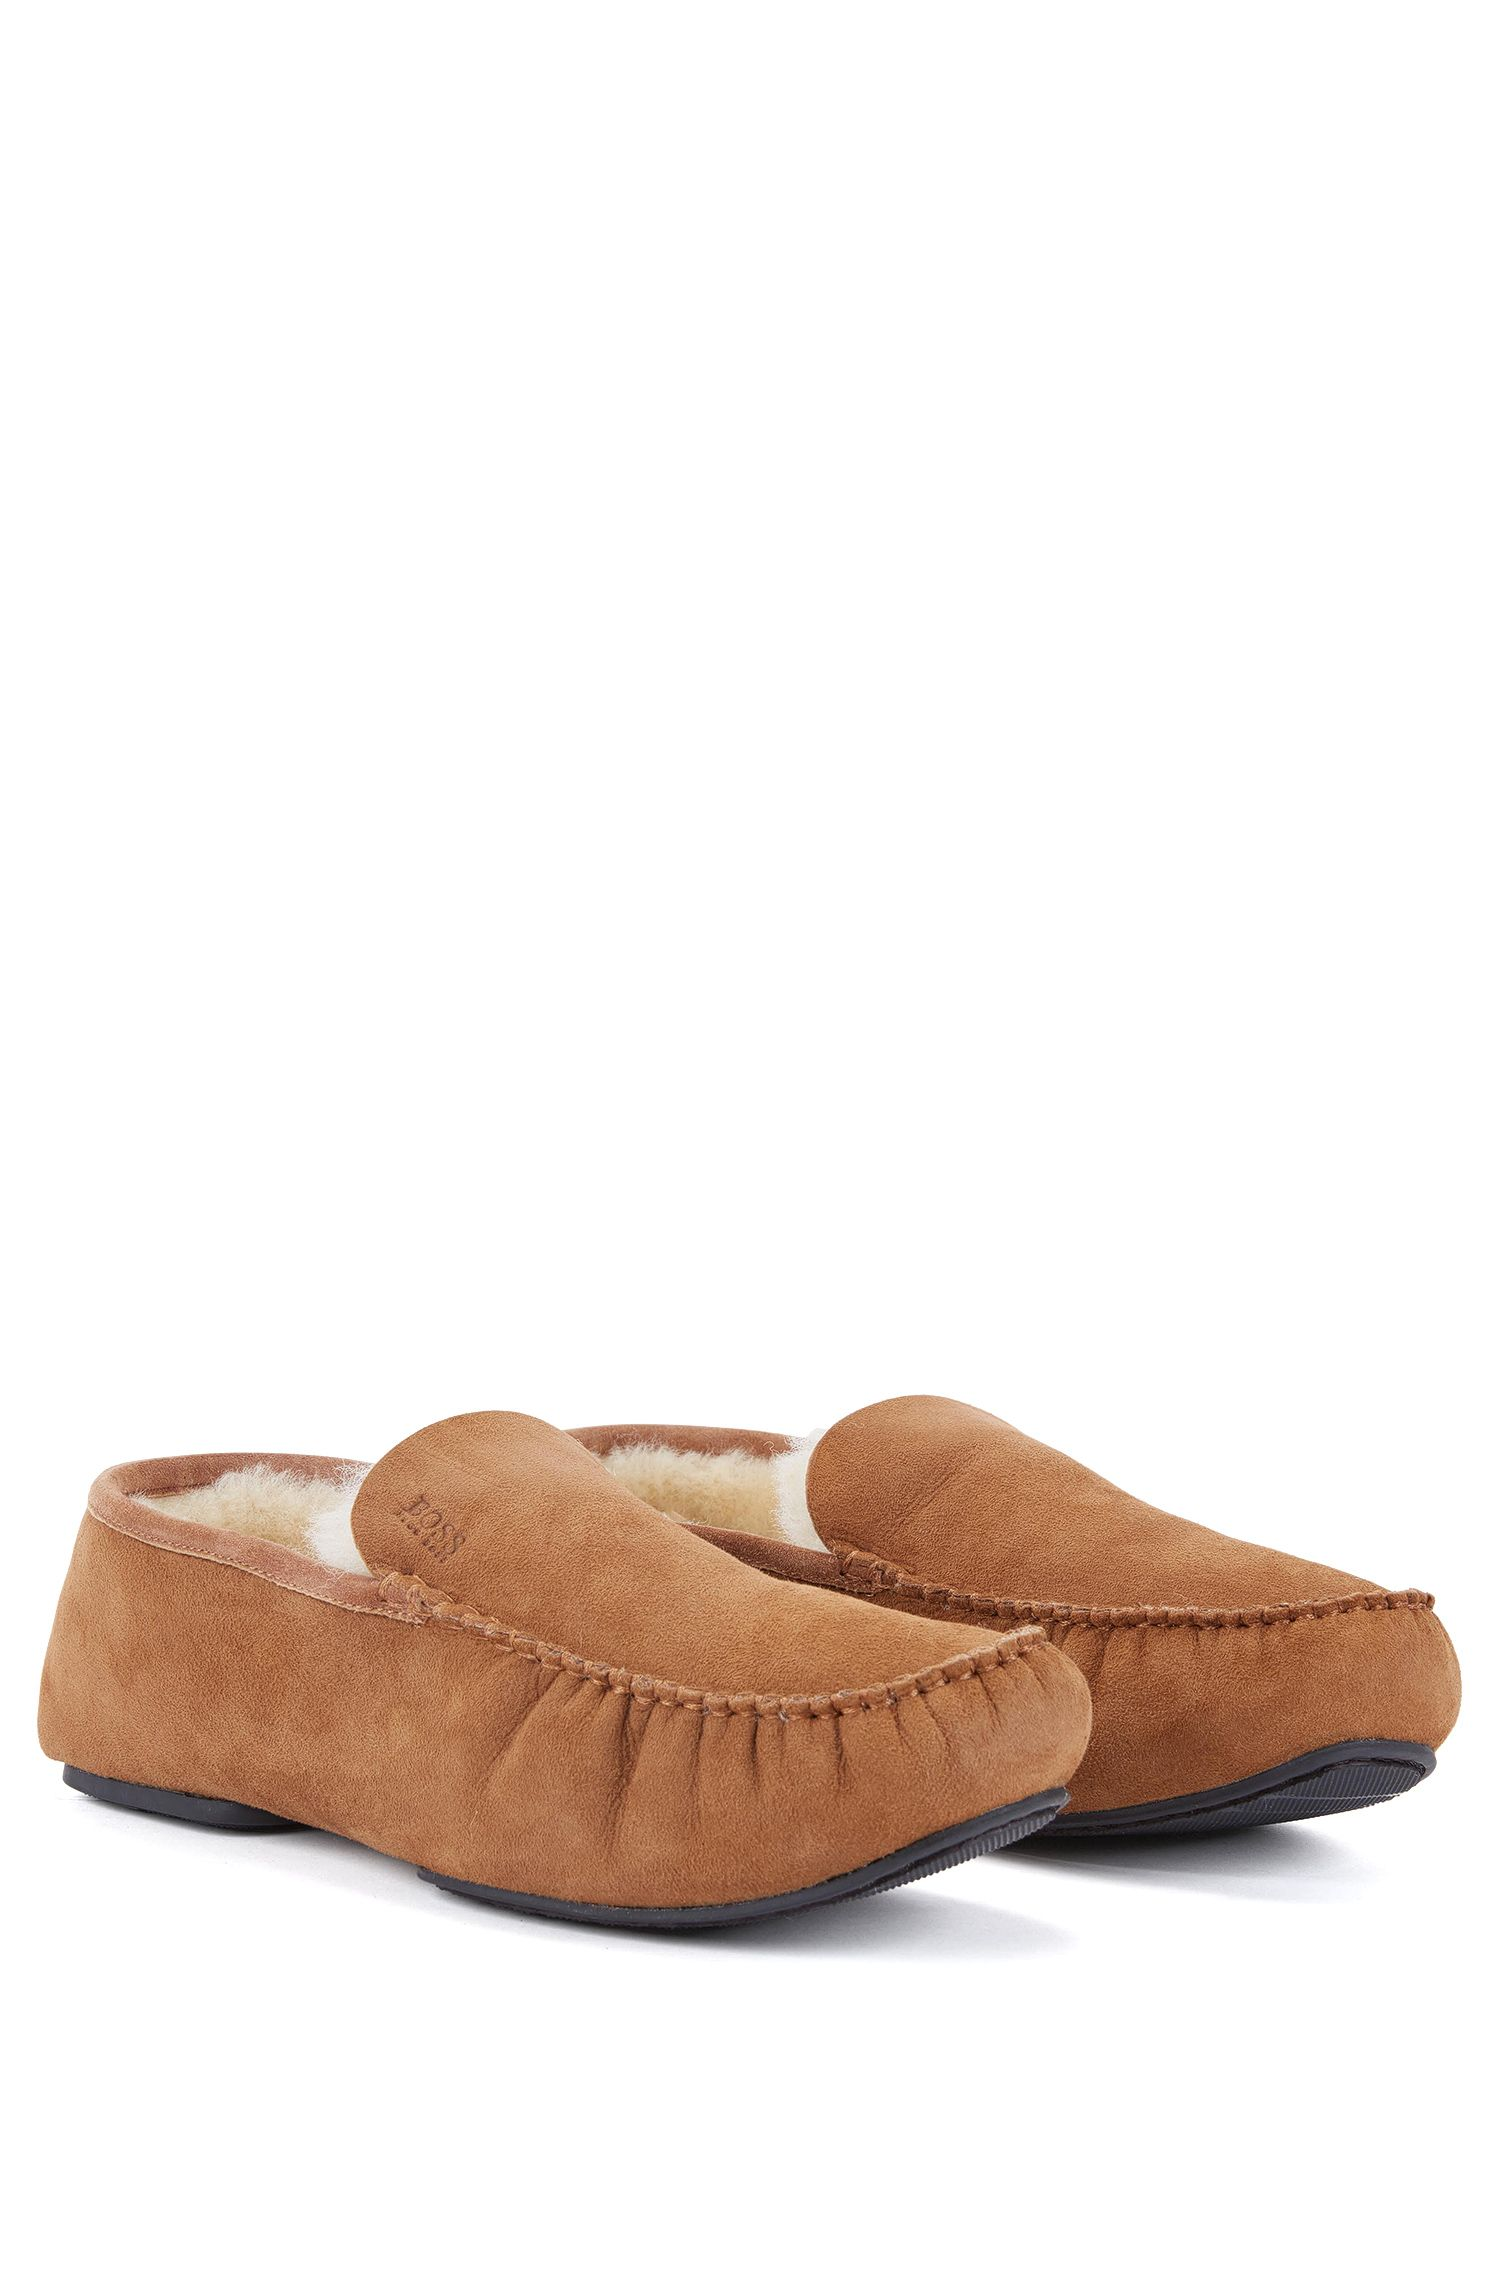 Suede moccasins with shearling lining